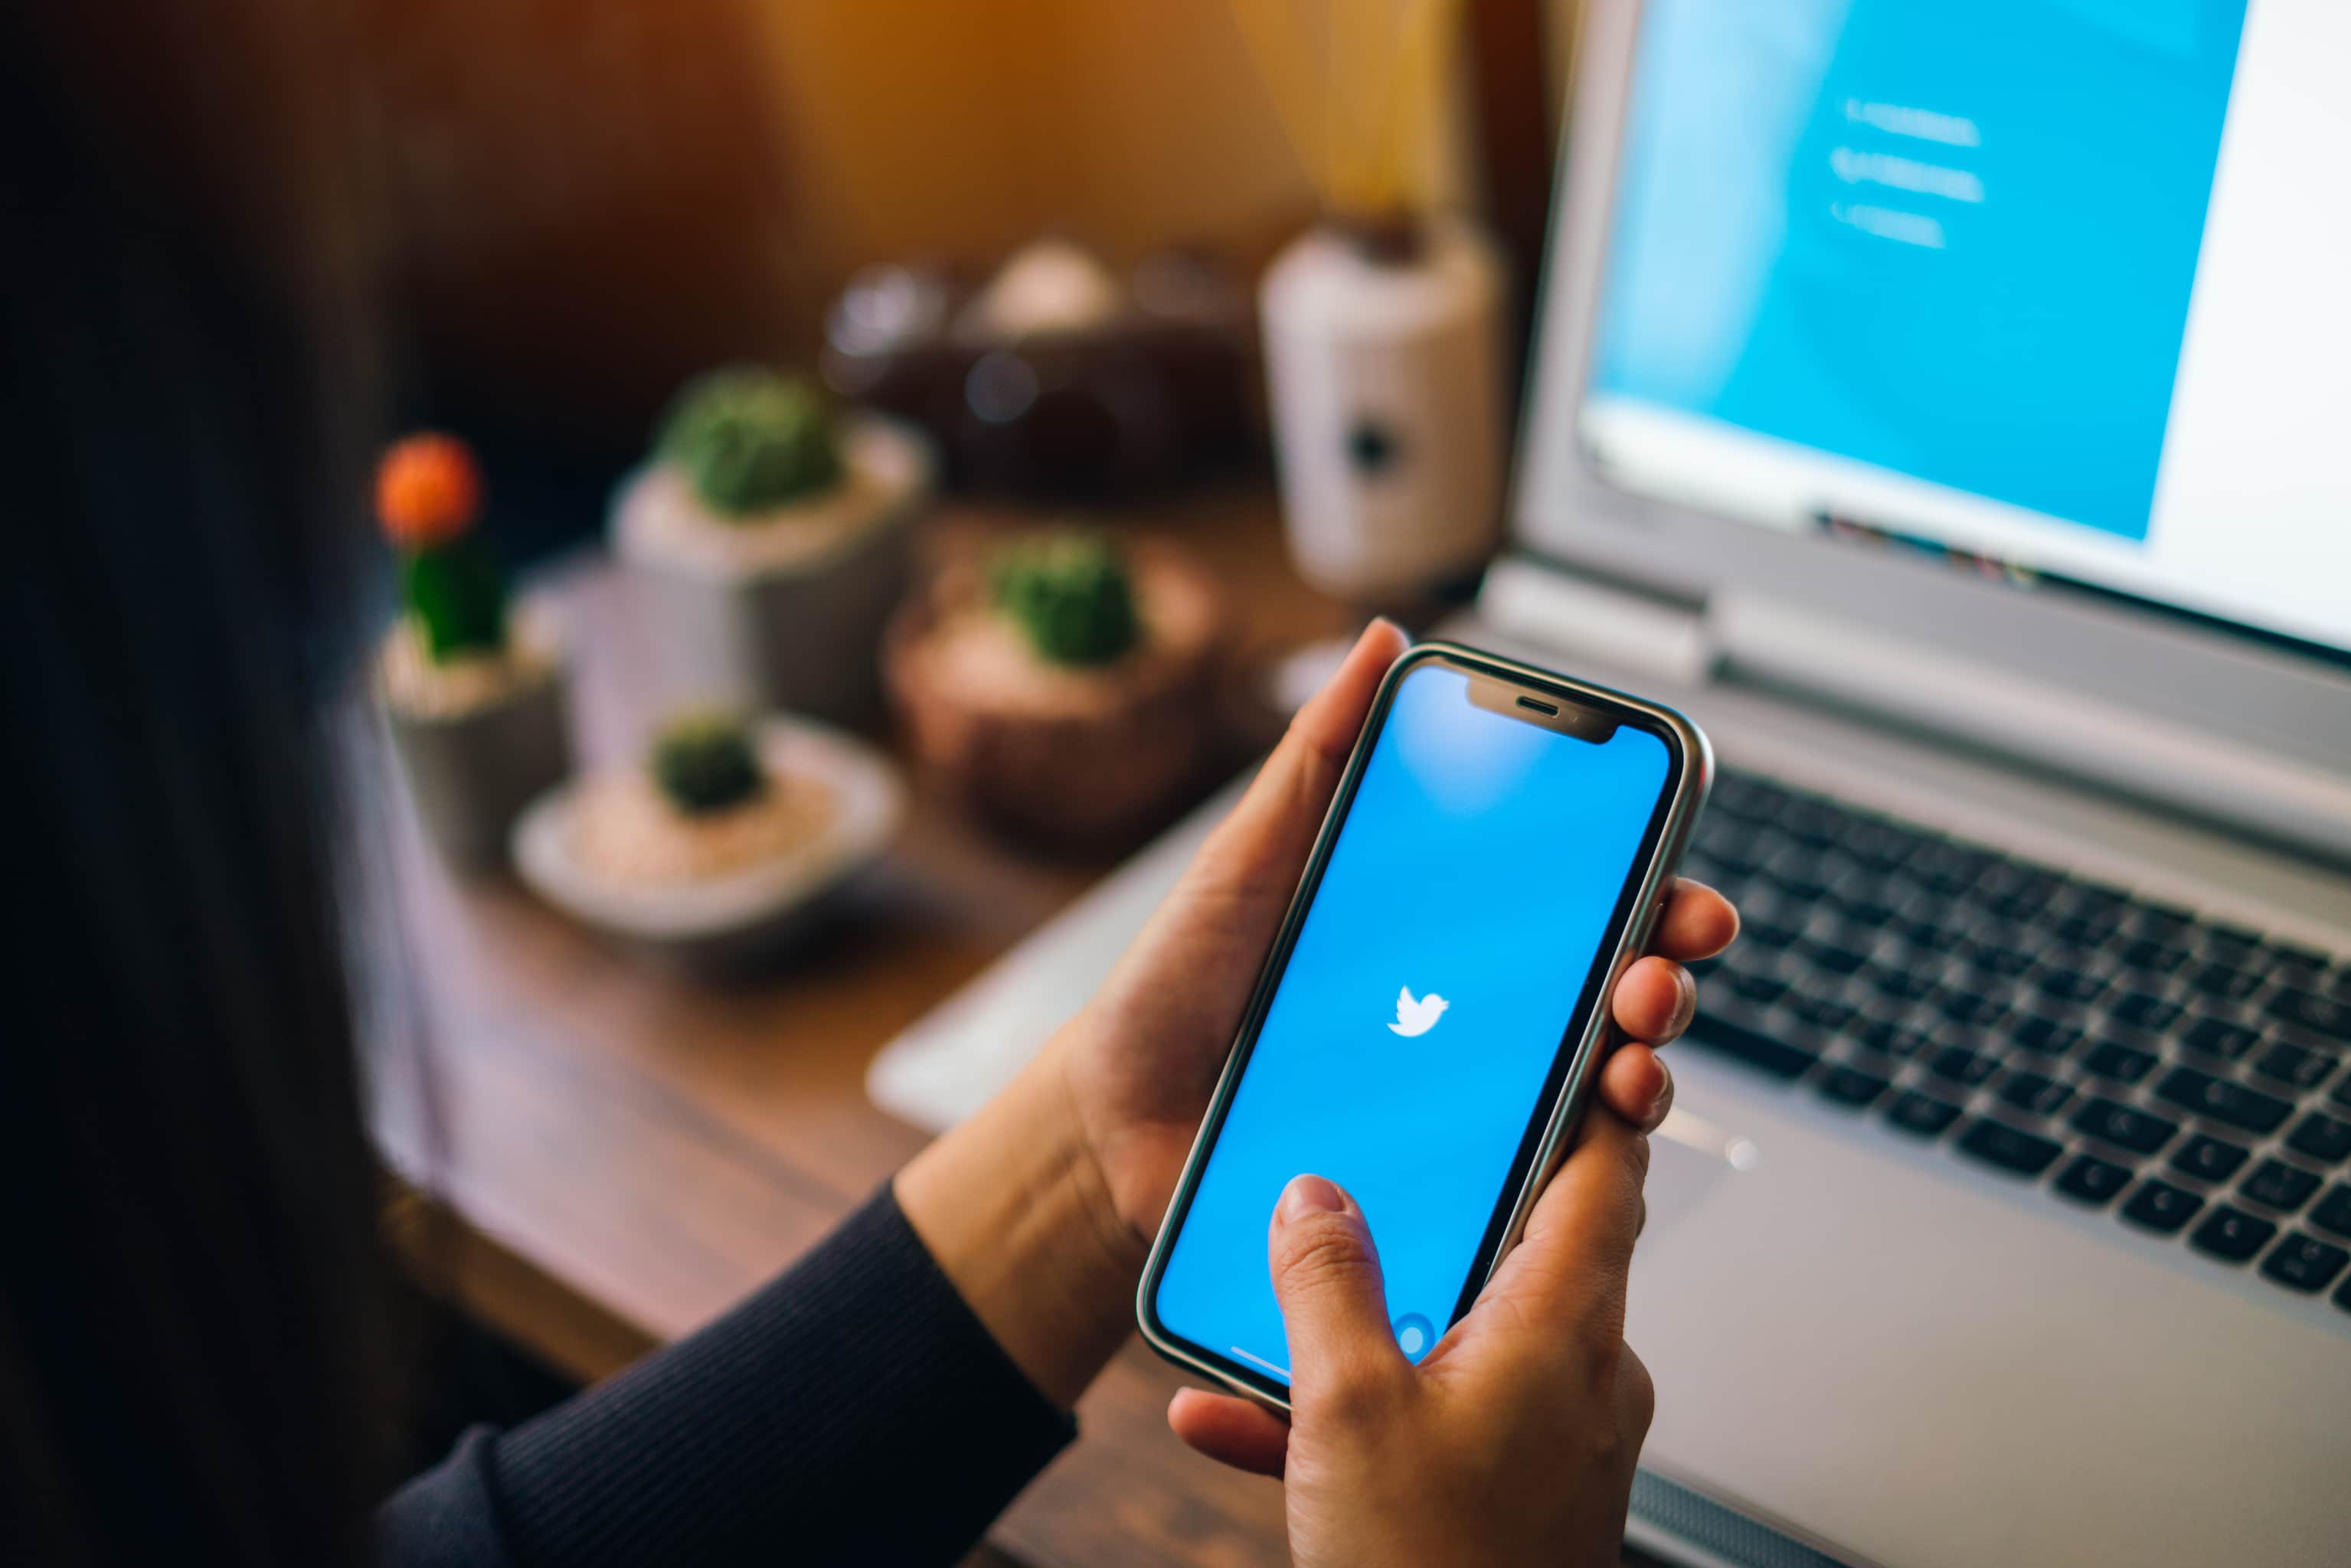 Twitter, Twitter löscht massenhaft Scam-Accounts